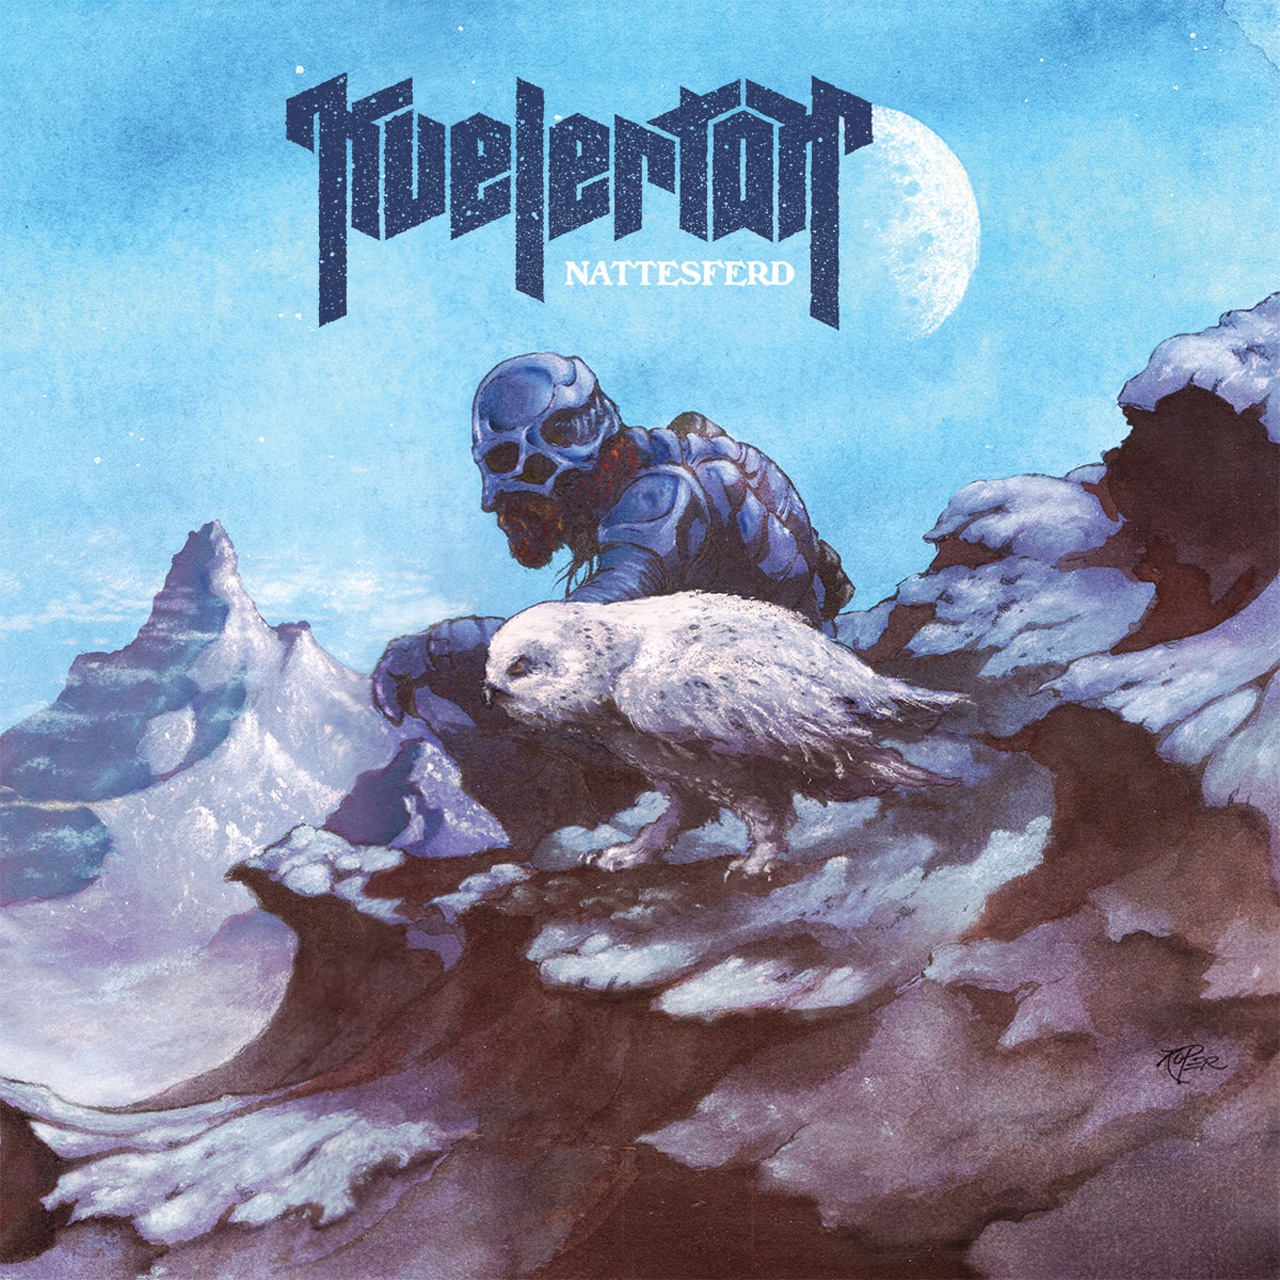 """Kvelertak Announces Their """"Nattesferd"""" Album, And Releases A New Song!"""